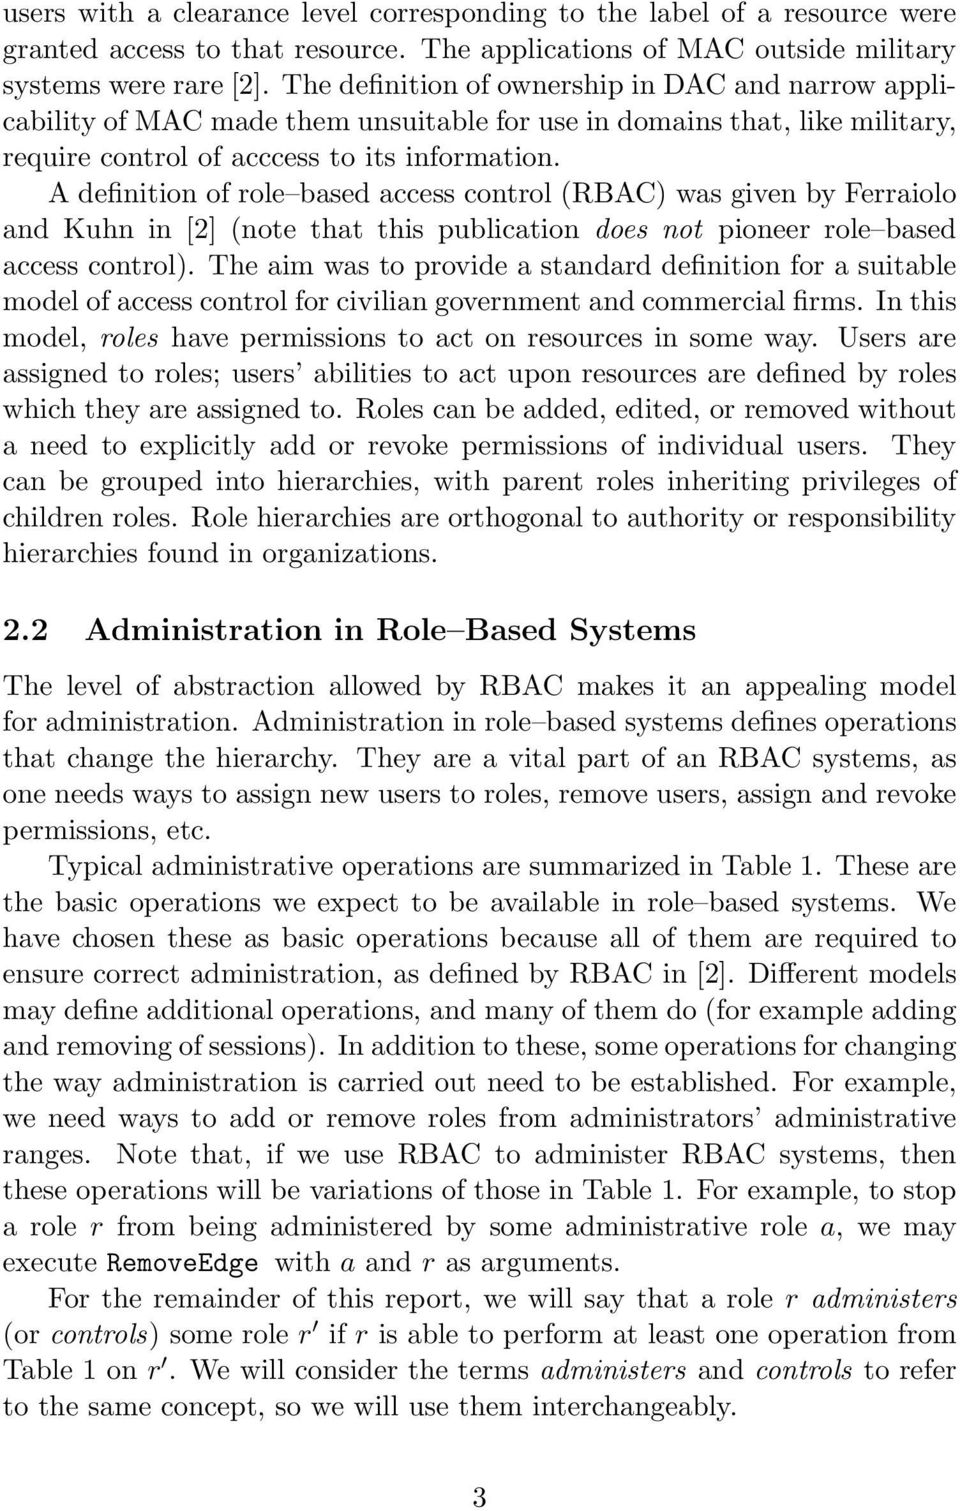 A definition of role based access control (RBAC) was given by Ferraiolo and Kuhn in [2] (note that this publication does not pioneer role based access control).